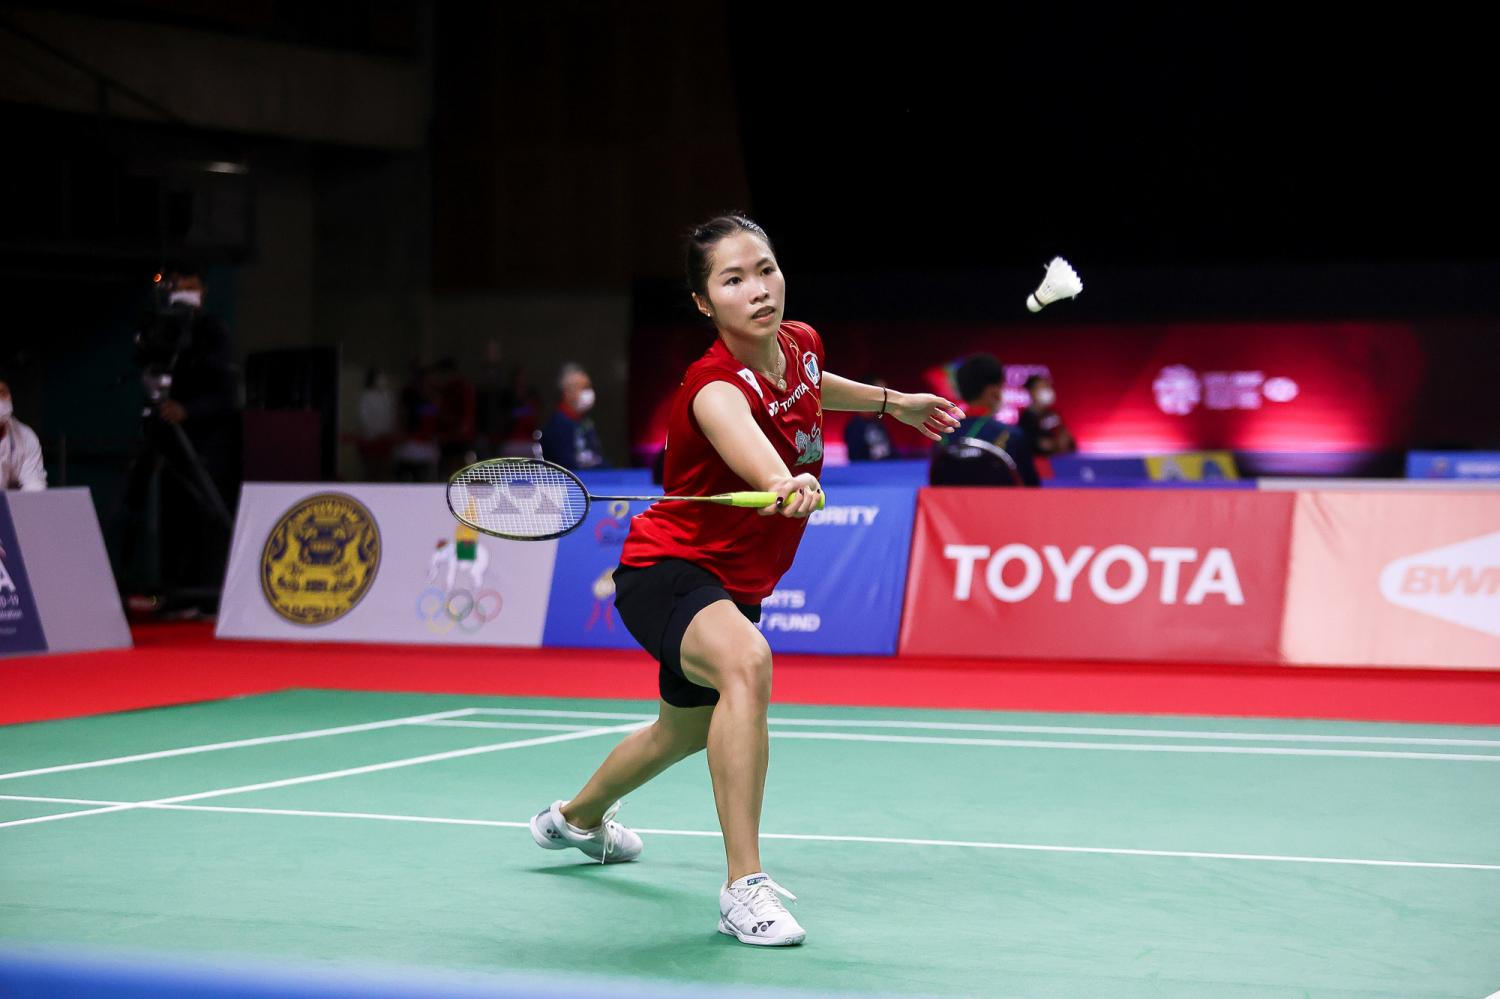 Fourth seed Ratchanok Intanon plays a shot during her second round match against Sung Ji-Hyun at Impact Arena.